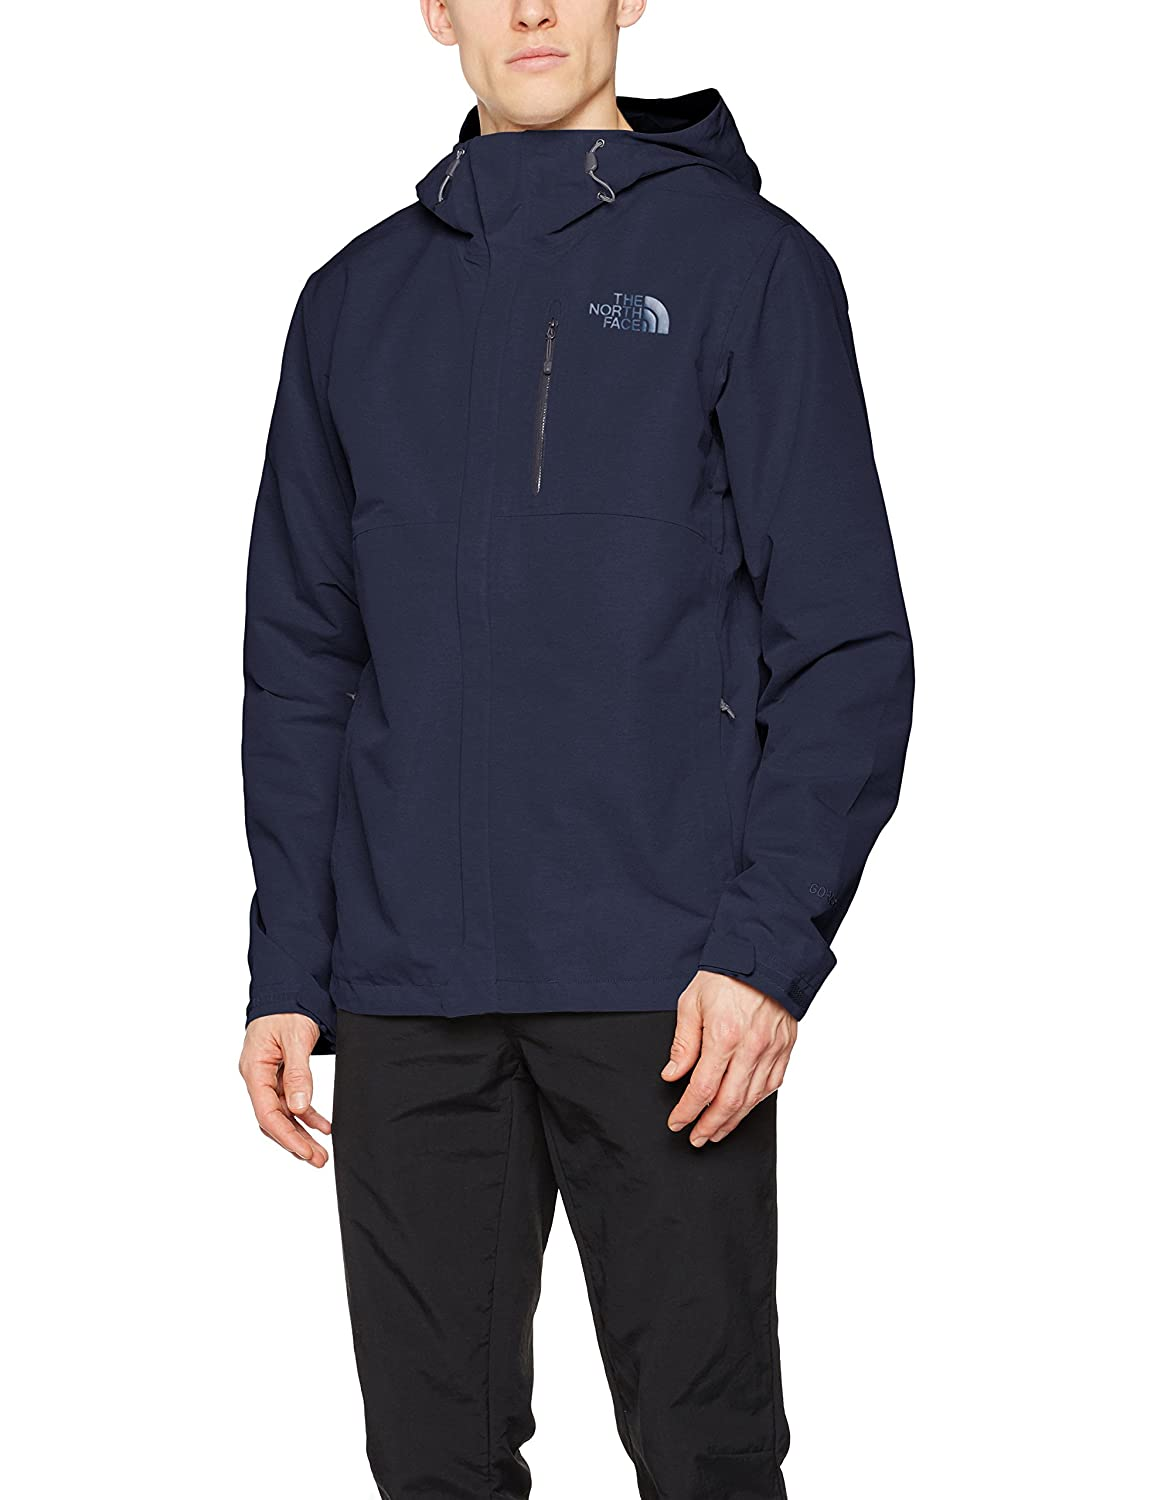 The North Face Herren Regenjacke Dryzzle